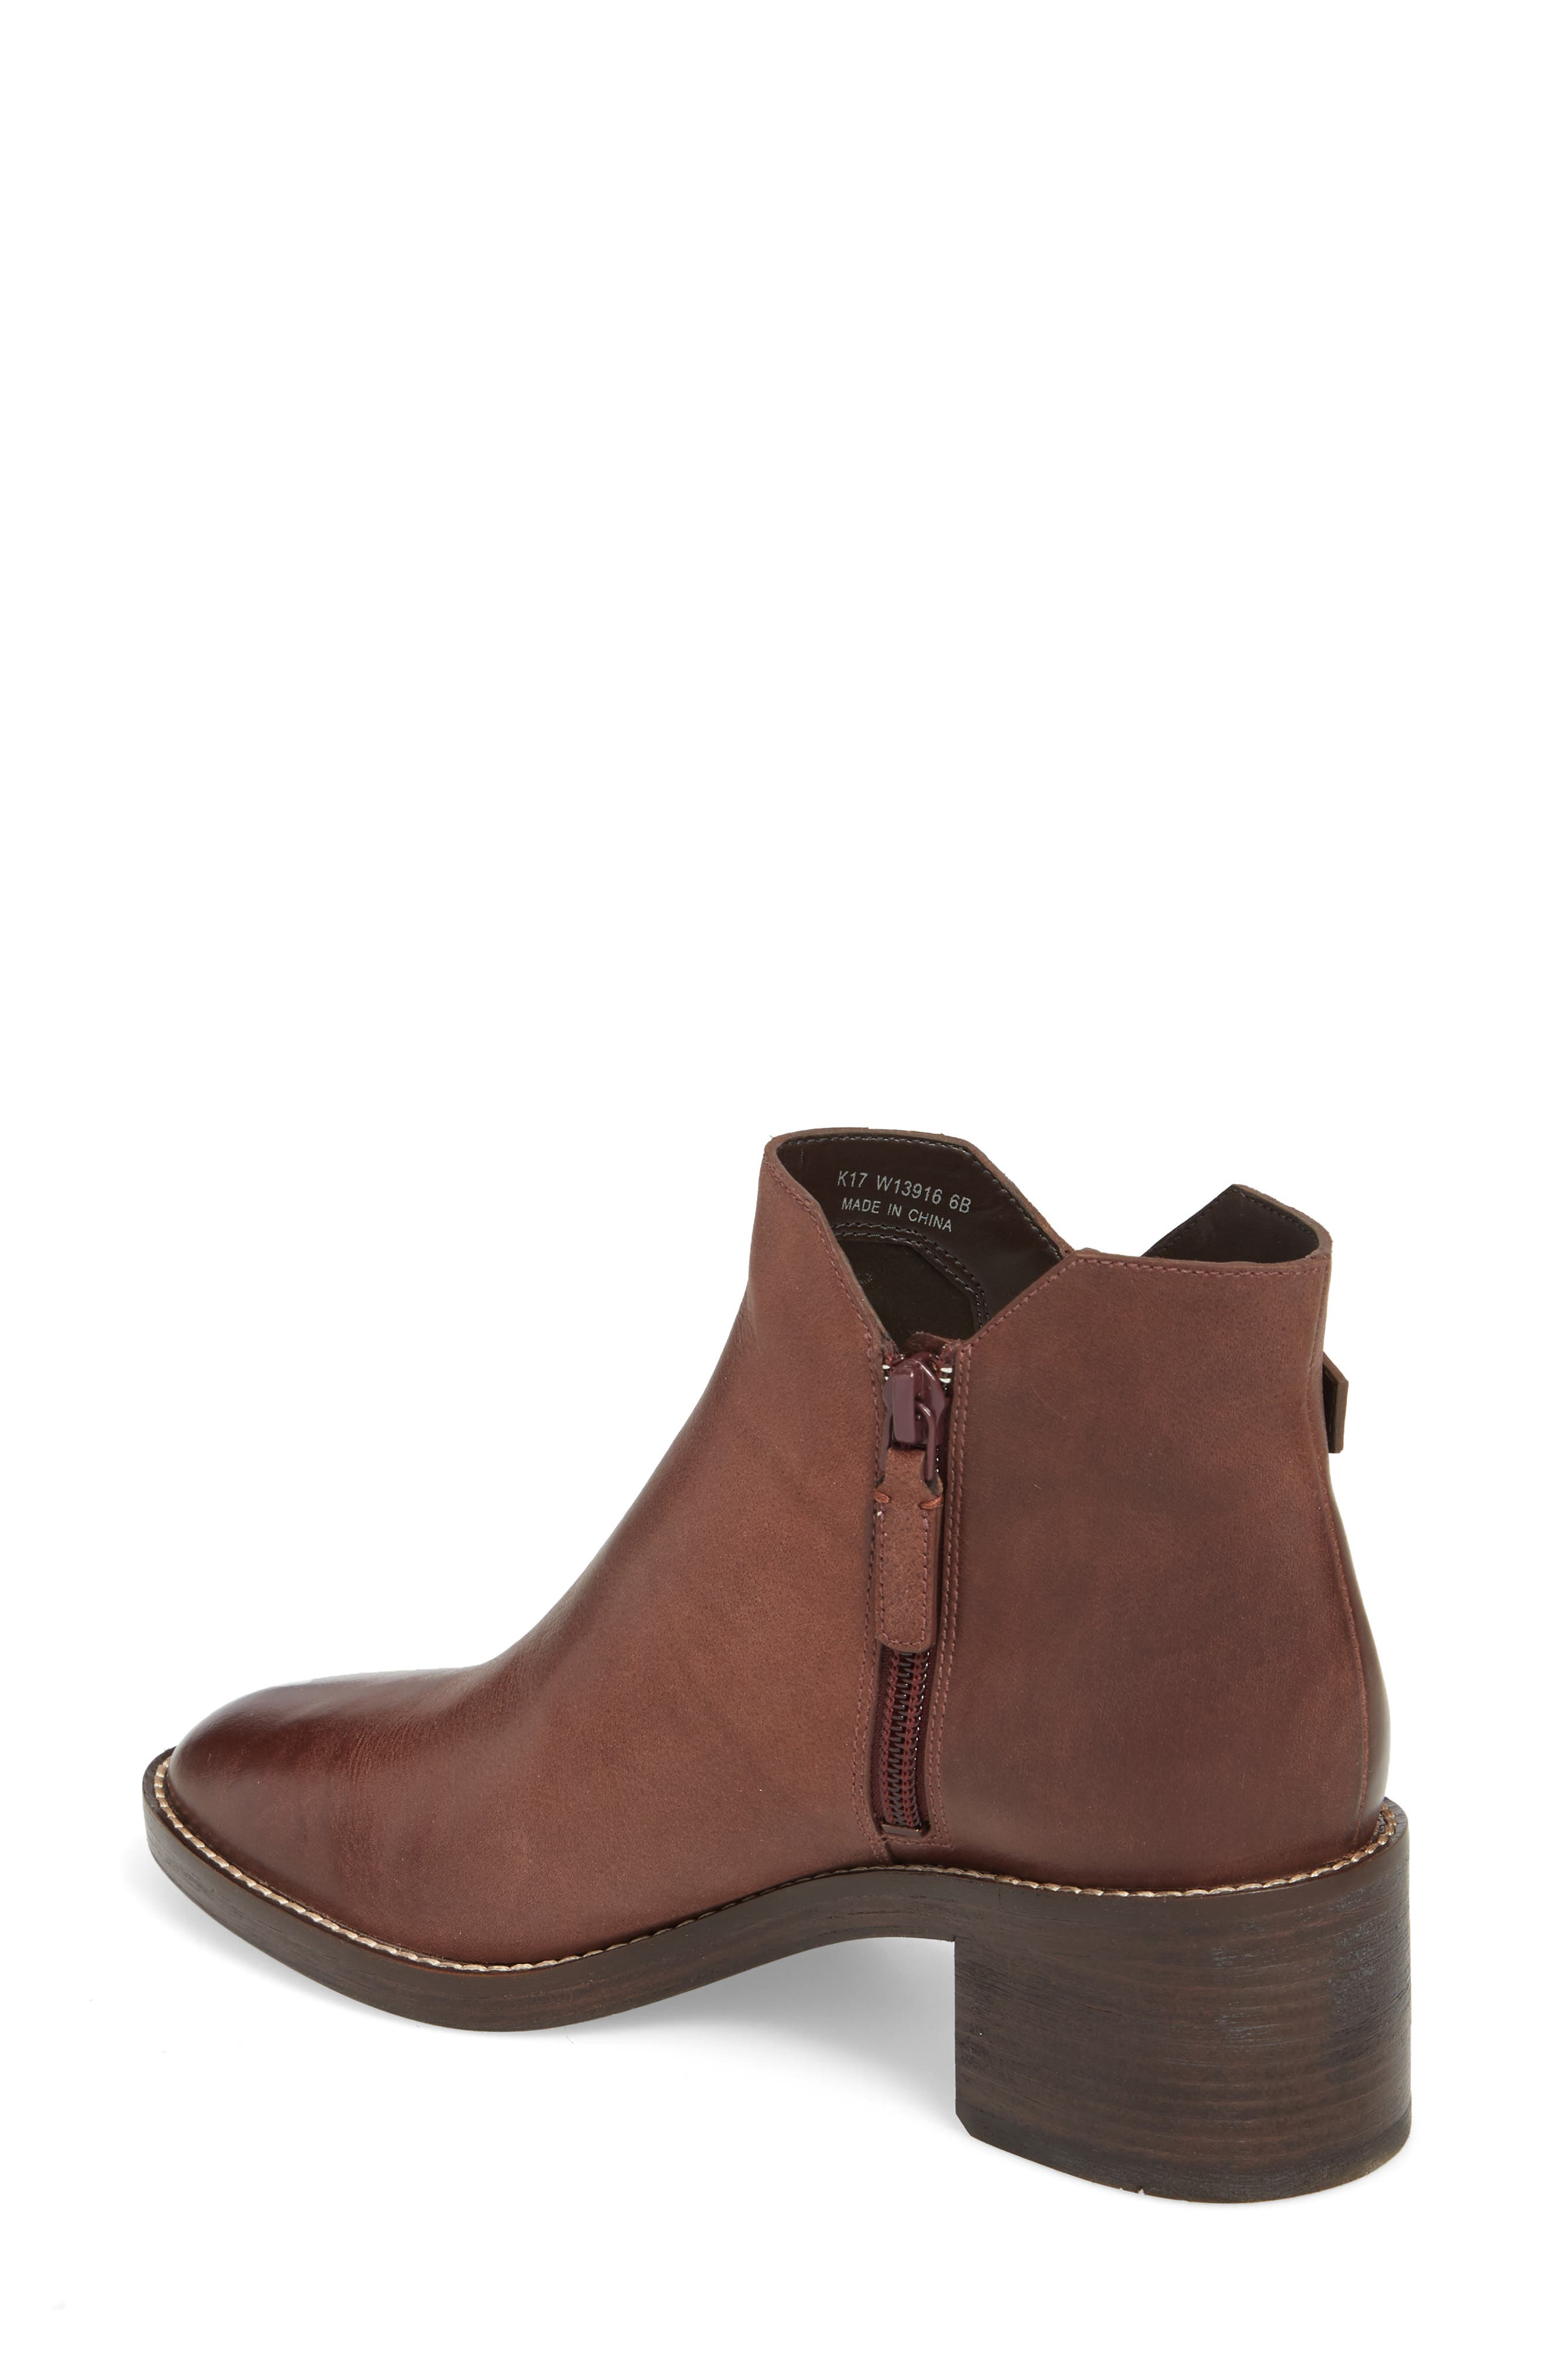 Harrington Grand Buckle Bootie,                             Alternate thumbnail 2, color,                             Chocolate Leather